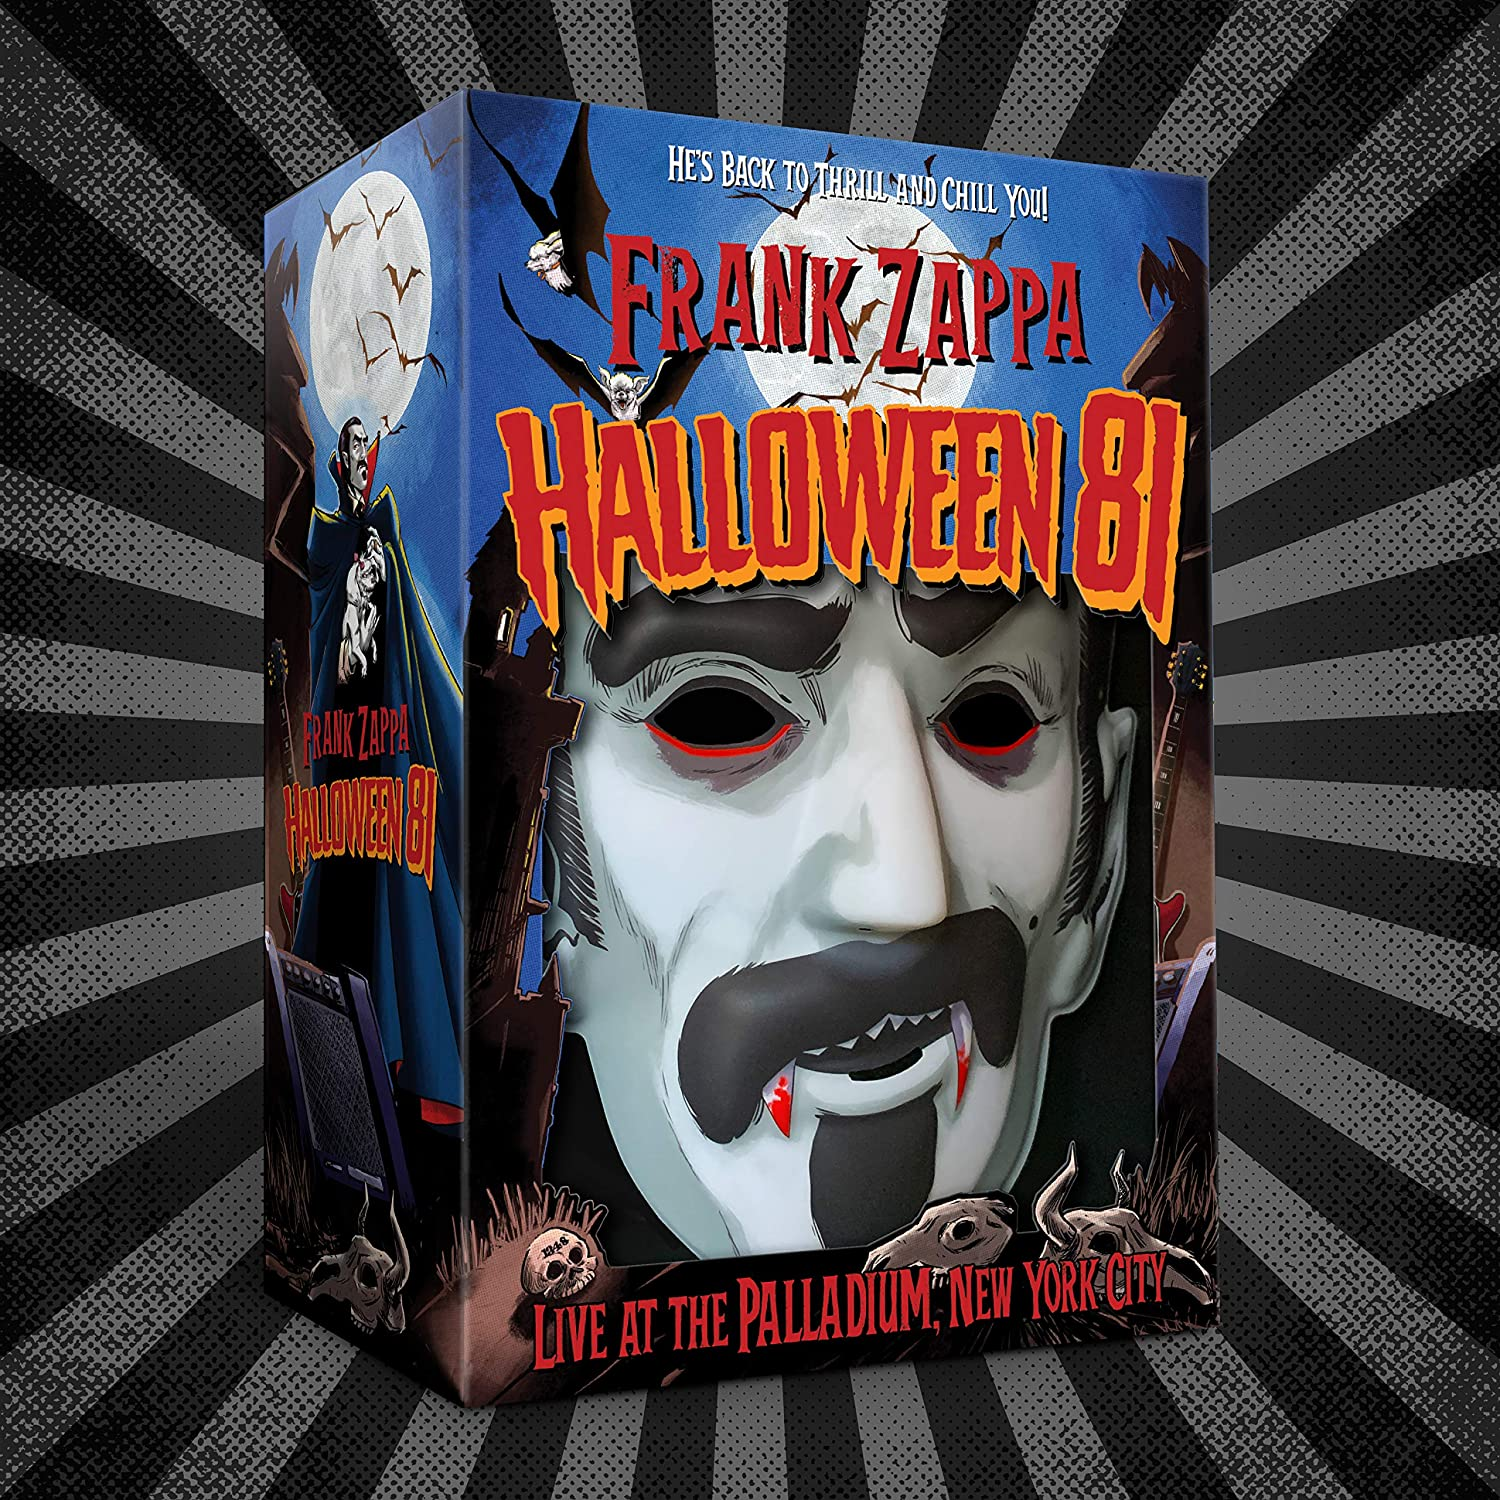 Frank Zappa - Halloween 81 [6CD] (Live At The Palladium, New York City, 1981)